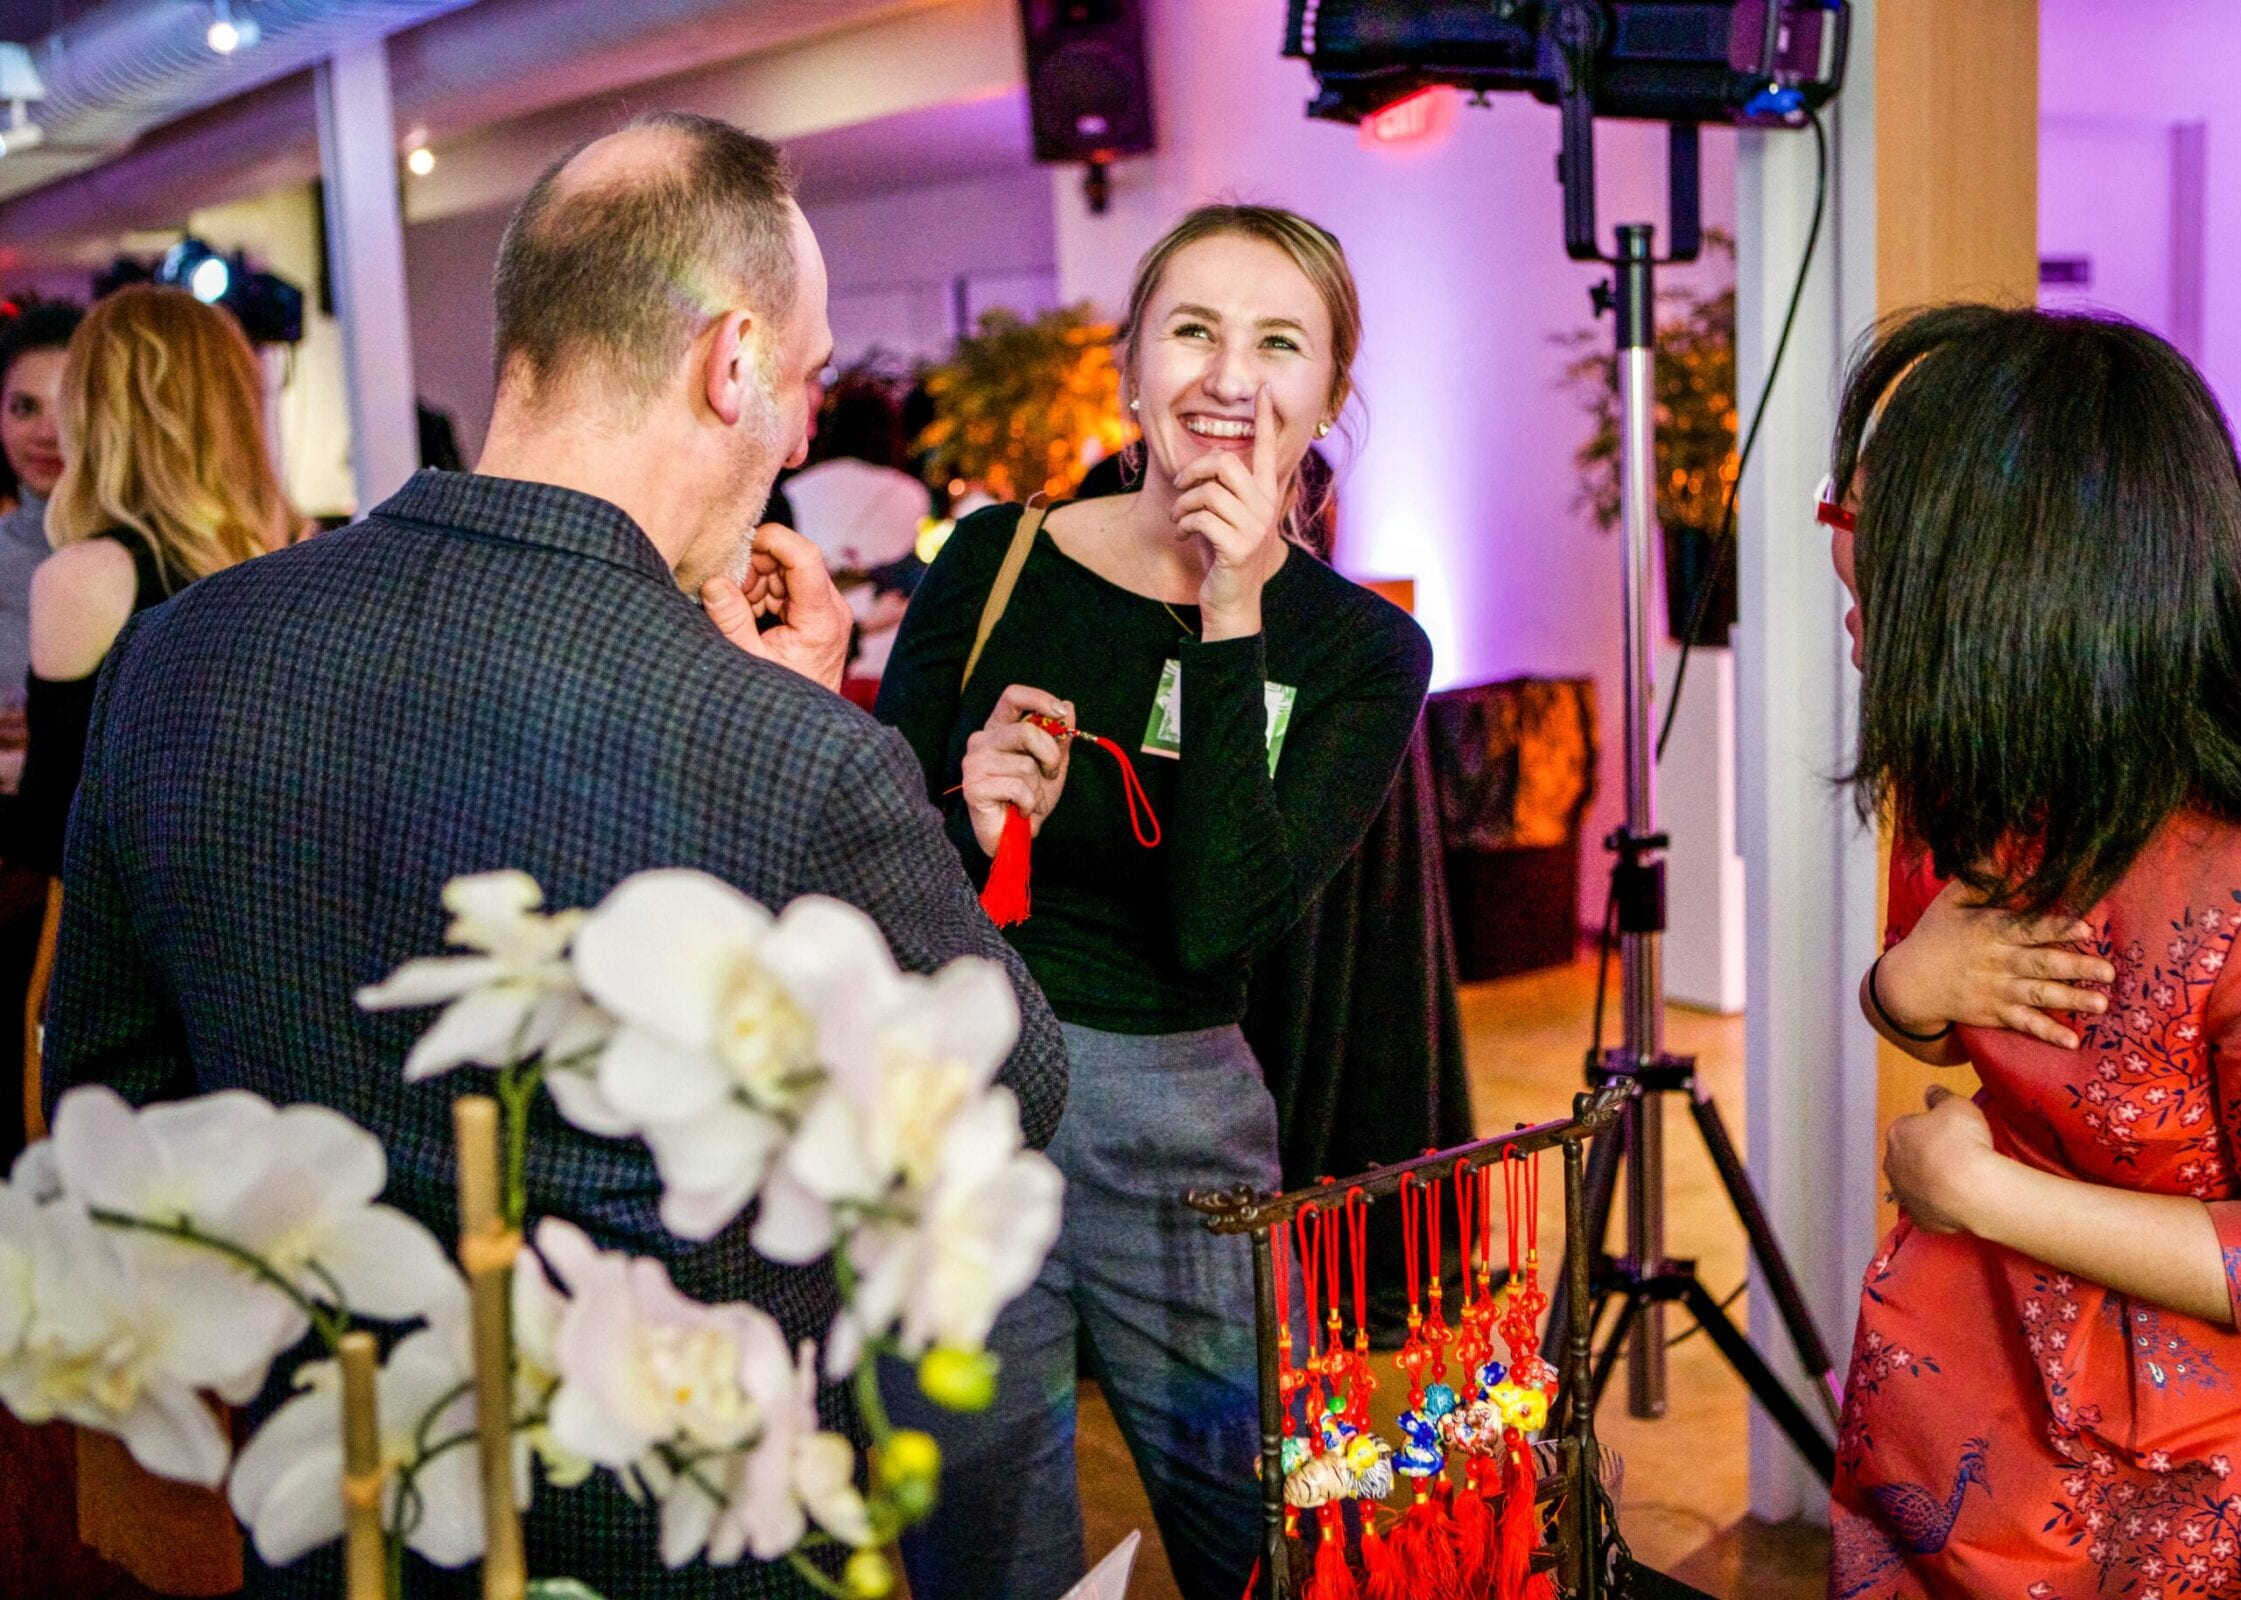 Small businesses, entrepreneurs, and creatives enjoyed the District Bliss Vendor Social, a light-hearted, welcoming, casual networking event